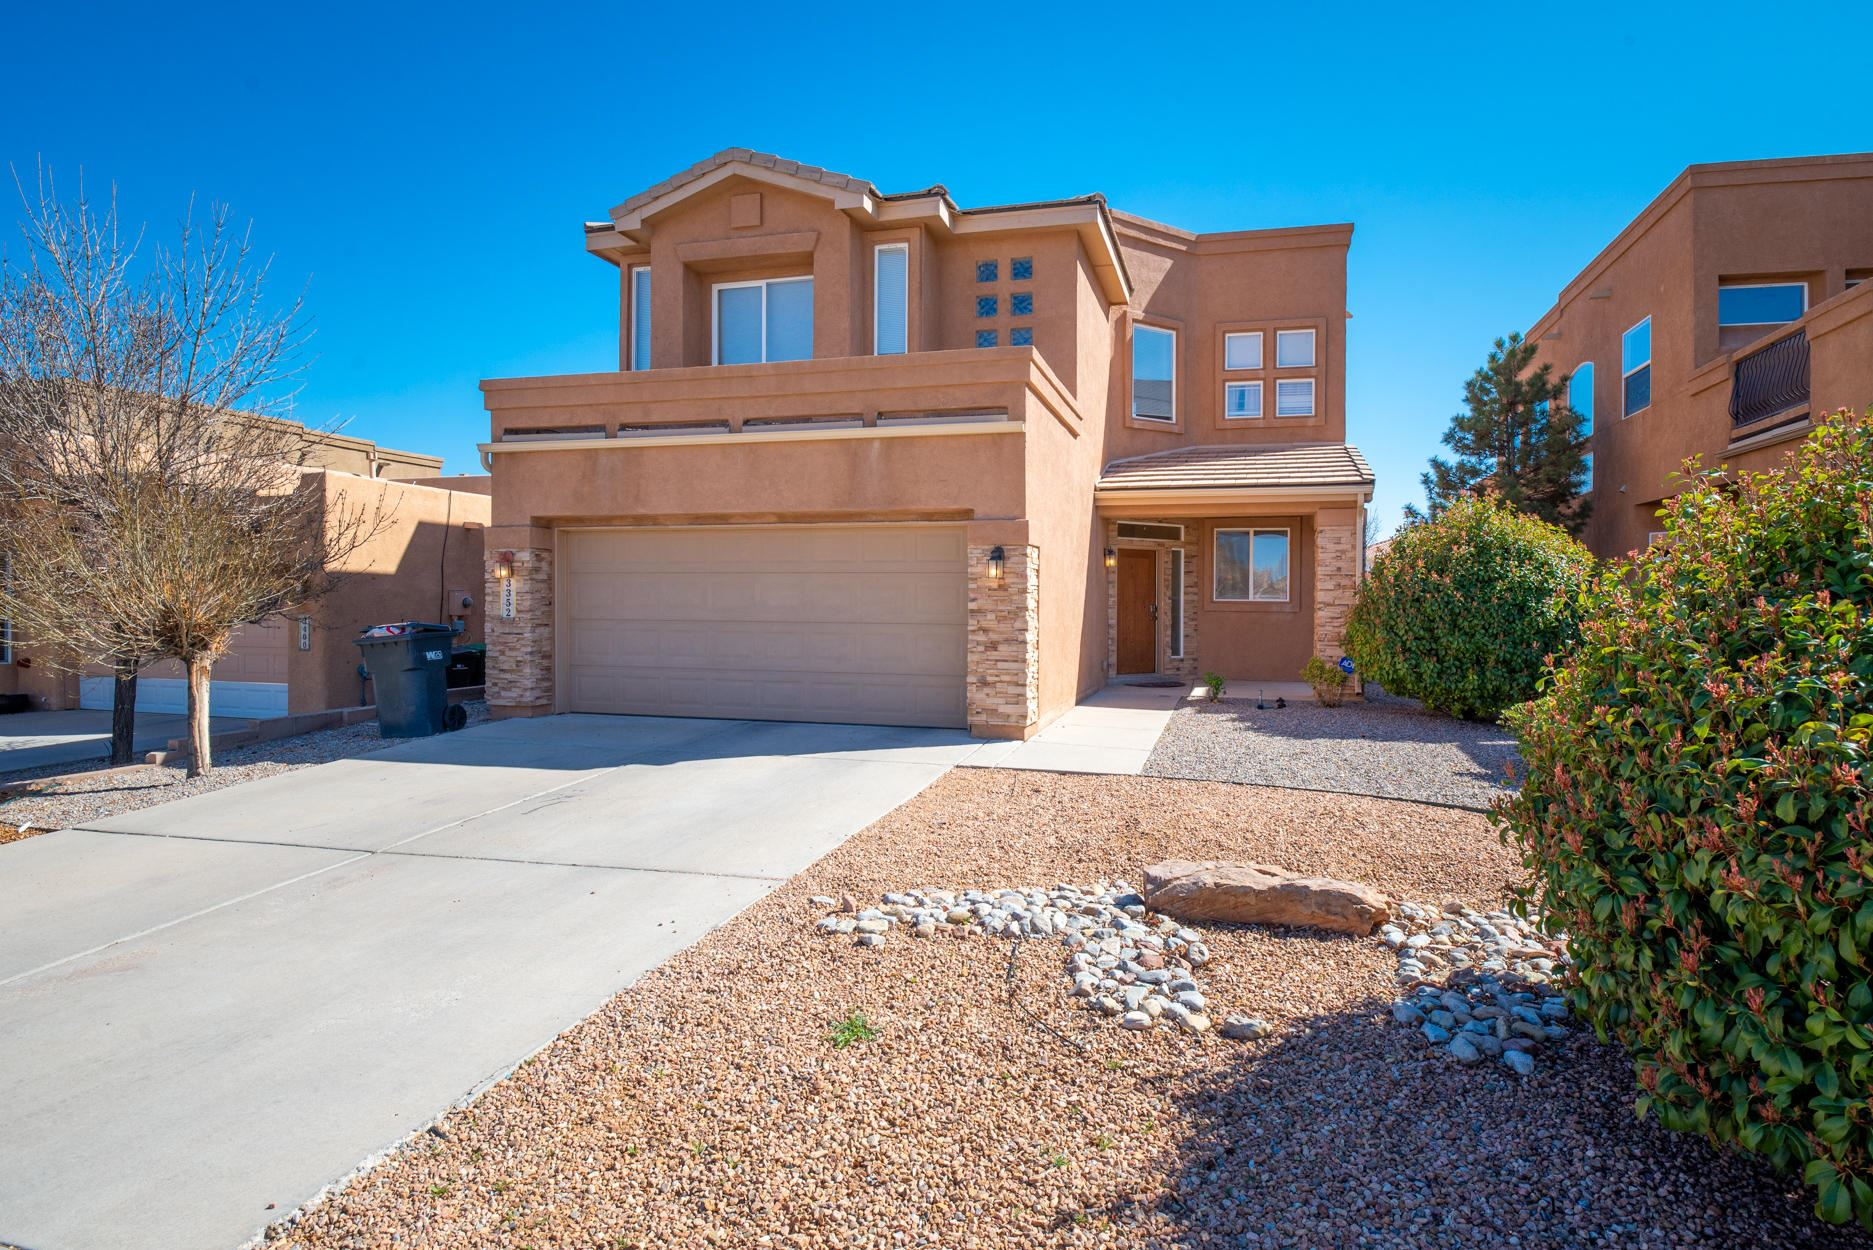 3352 LOCKERBIE Drive SE, Rio Rancho, NM 87124 - MLS#: 988787